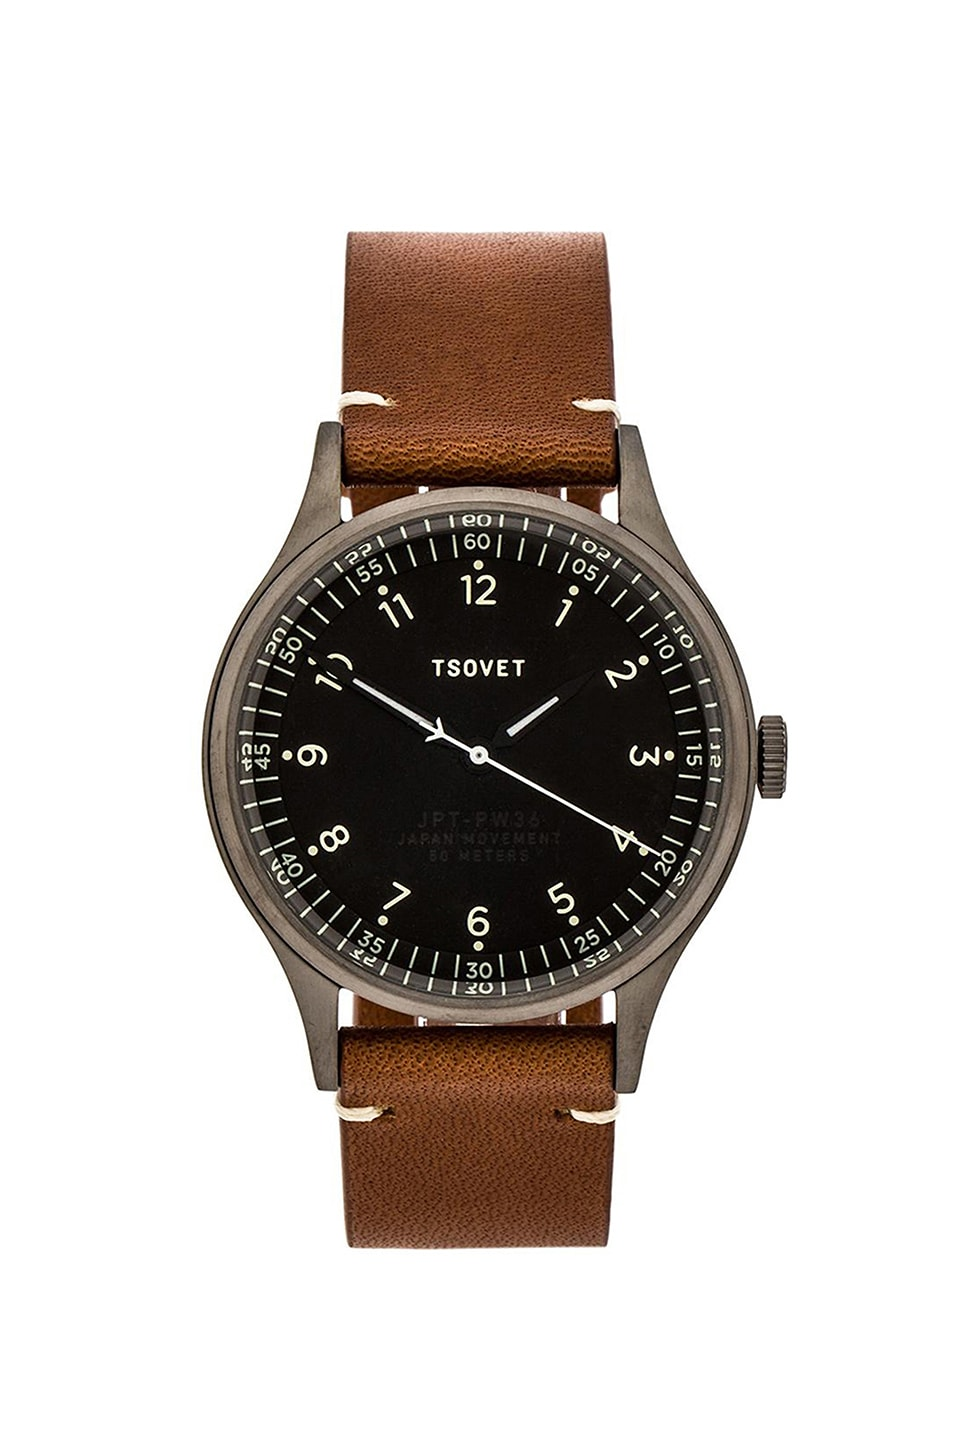 Tsovet JPT-PW36 in Brown & Black